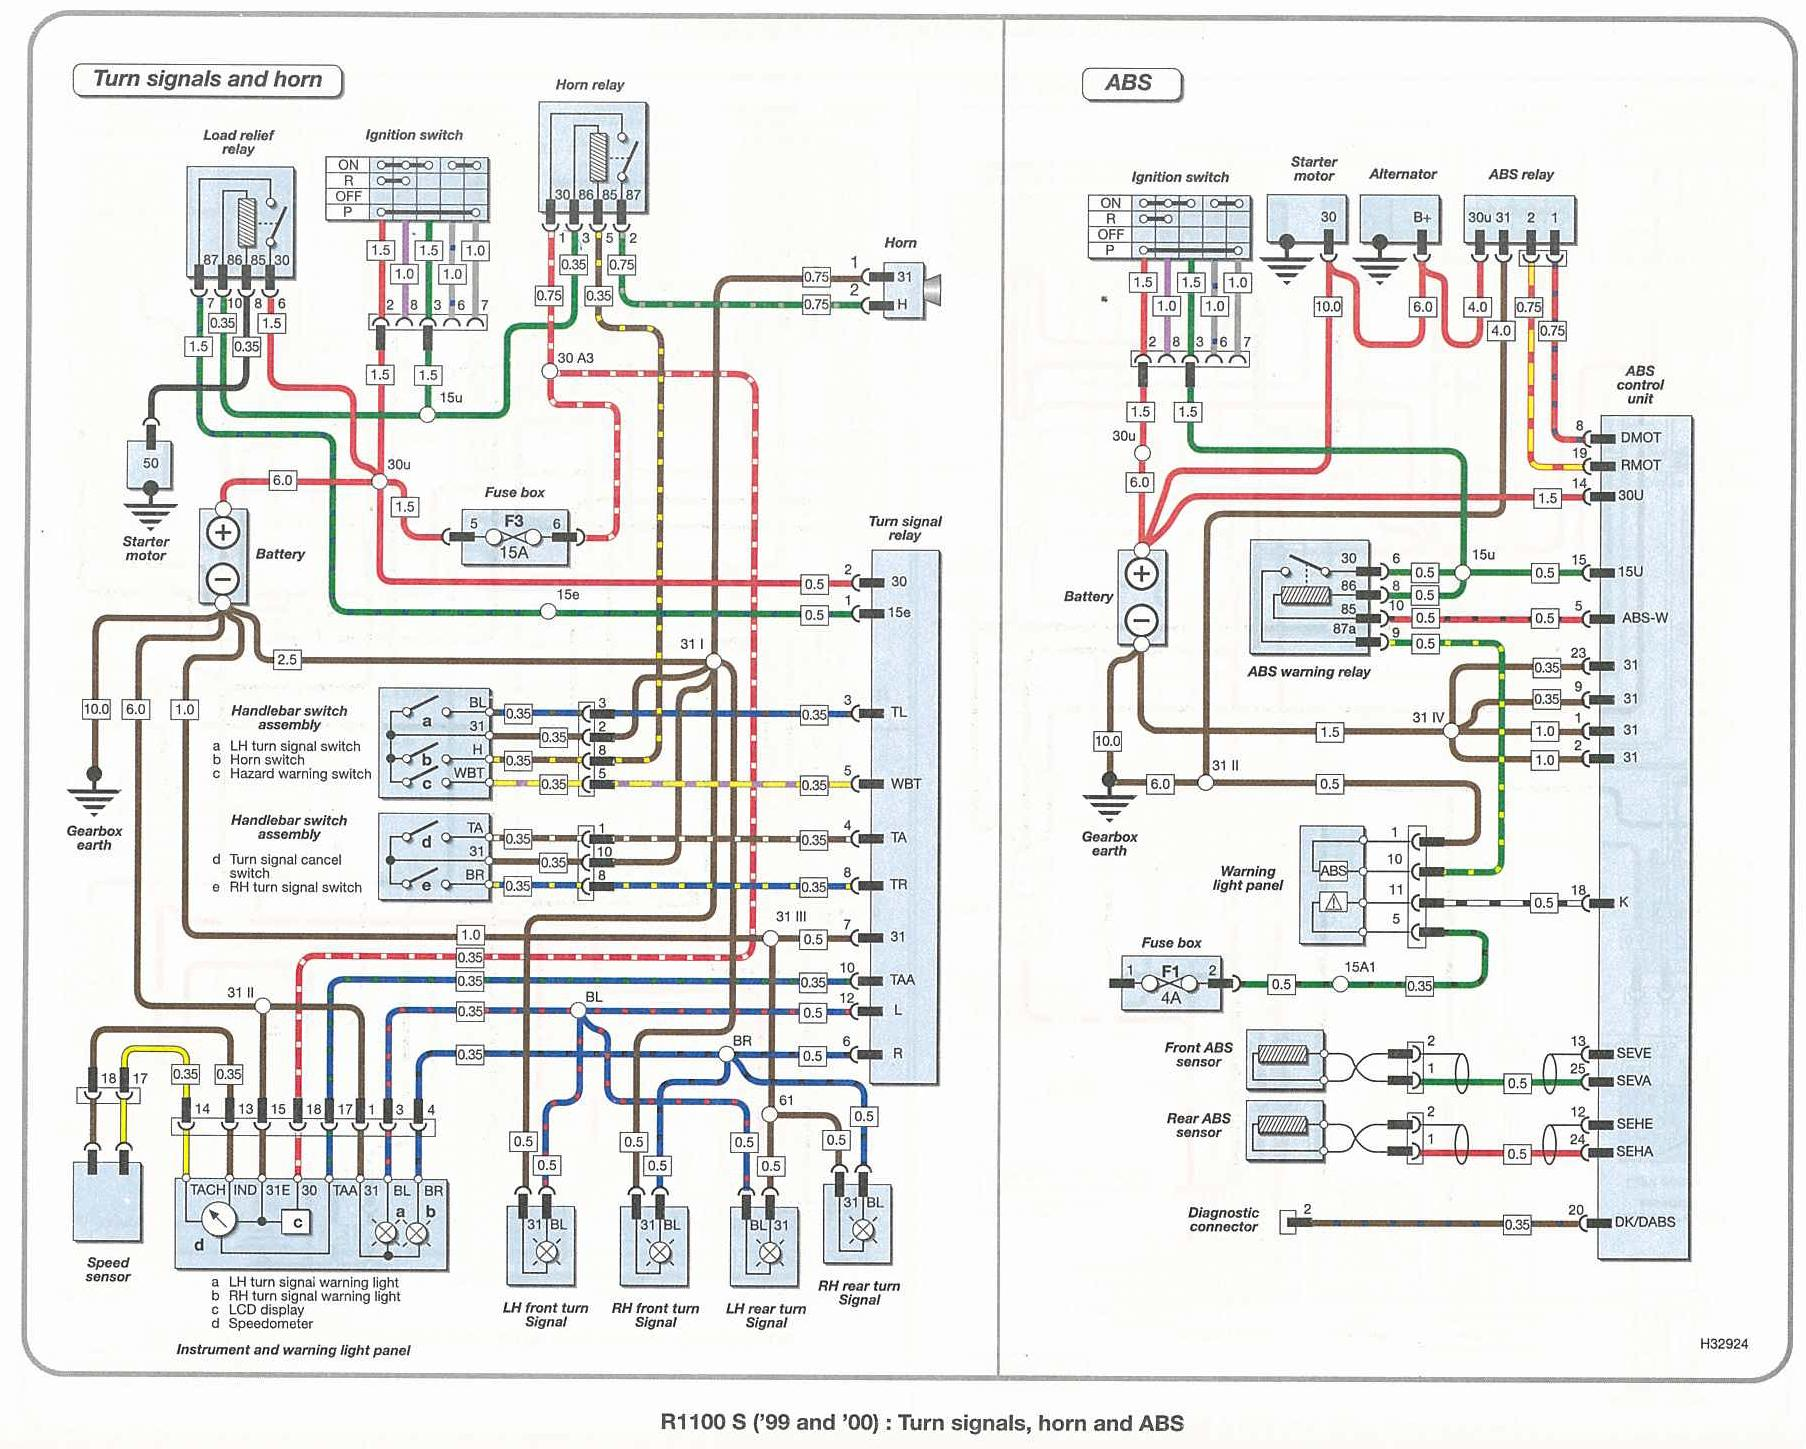 wiring03 bmw wiring diagram bmw wiring diagrams e39 \u2022 wiring diagrams j E46 Wiring Diagram PDF at sewacar.co